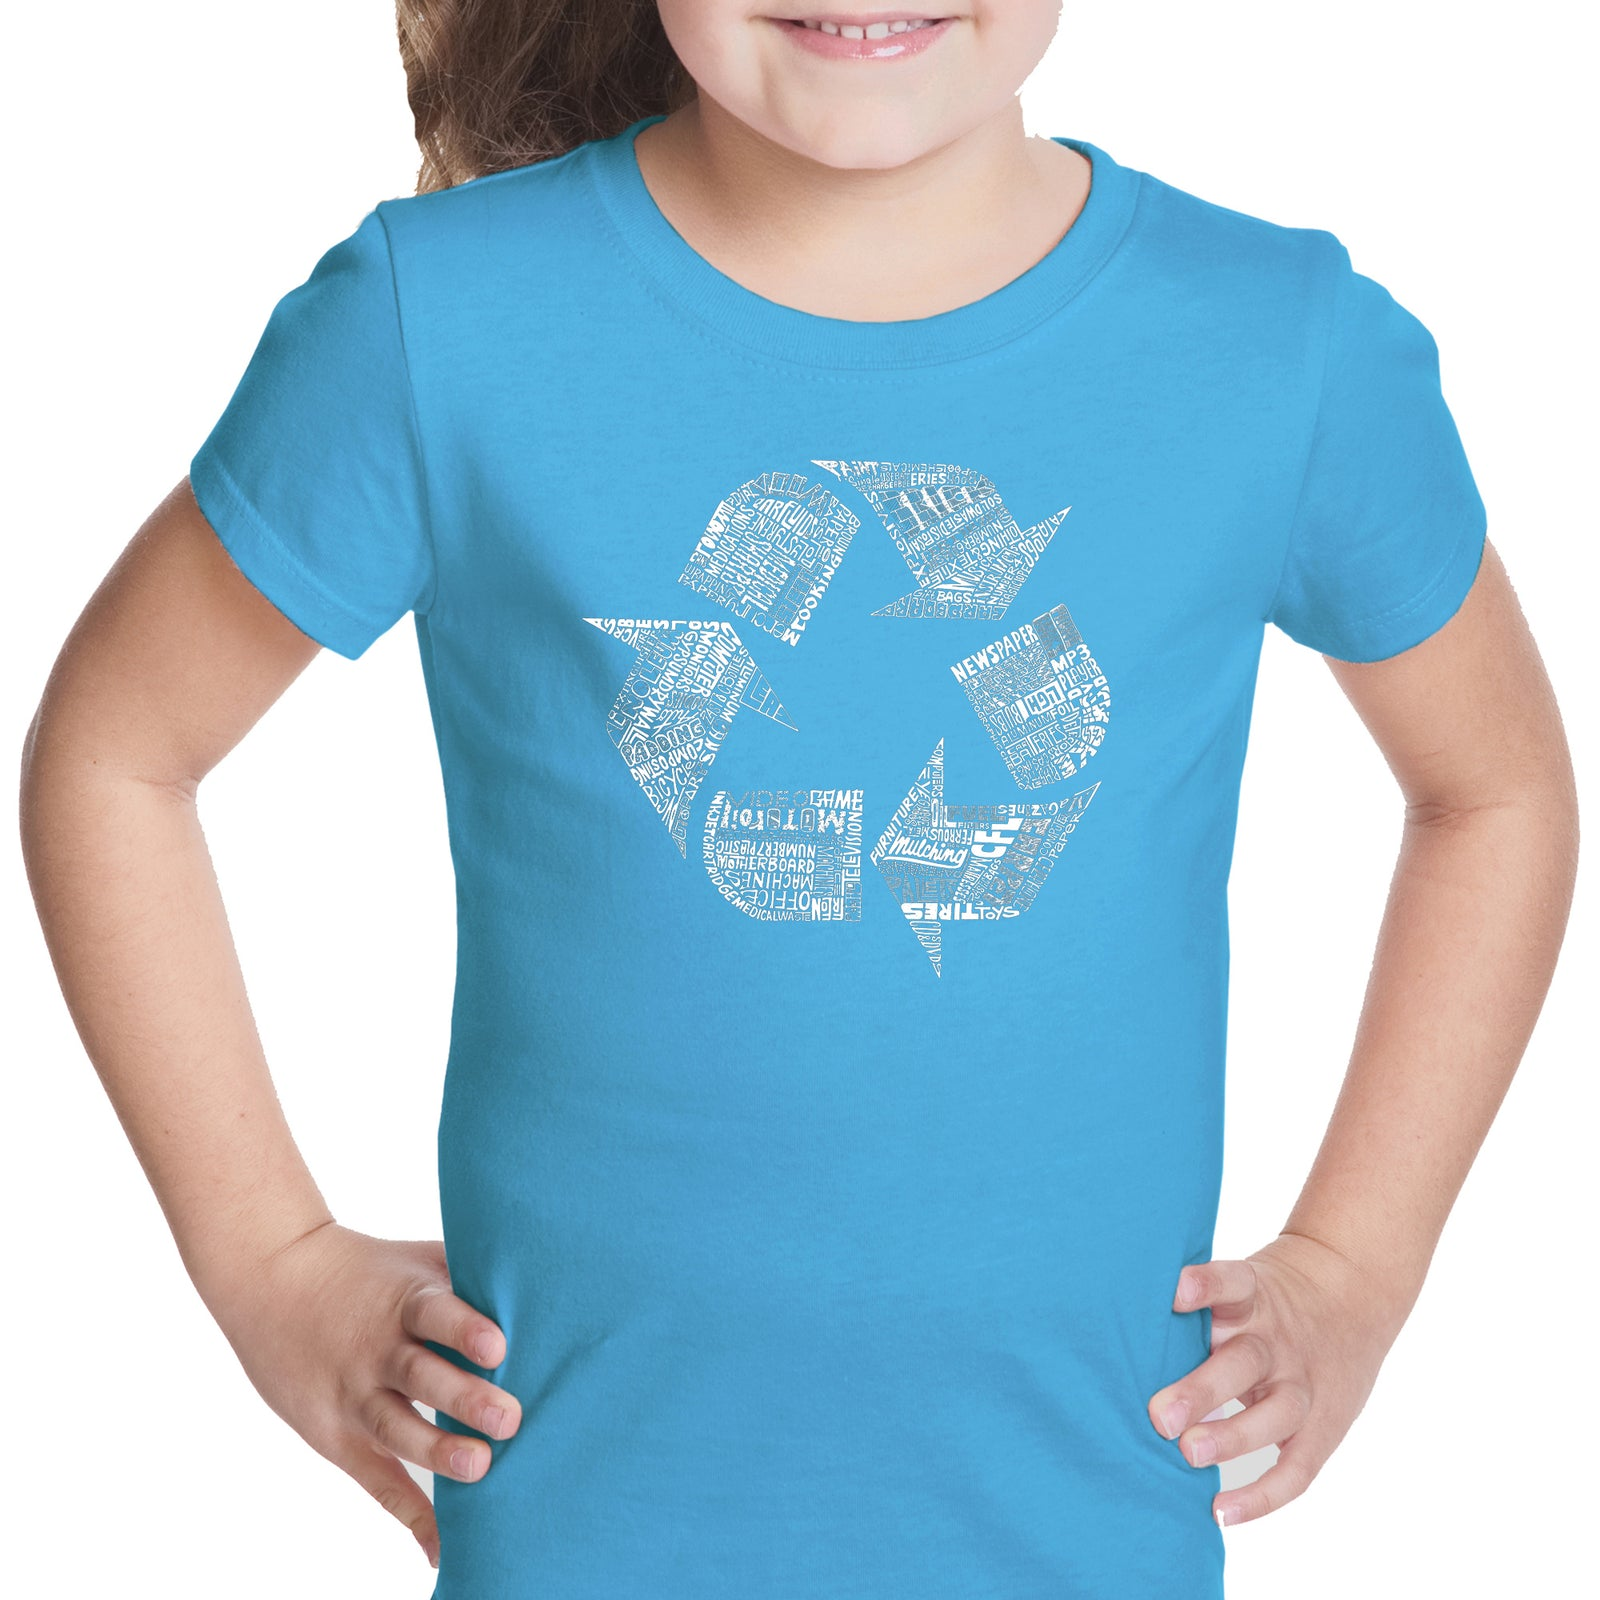 Girl's T-shirt - 86 RECYCLABLE PRODUCTS